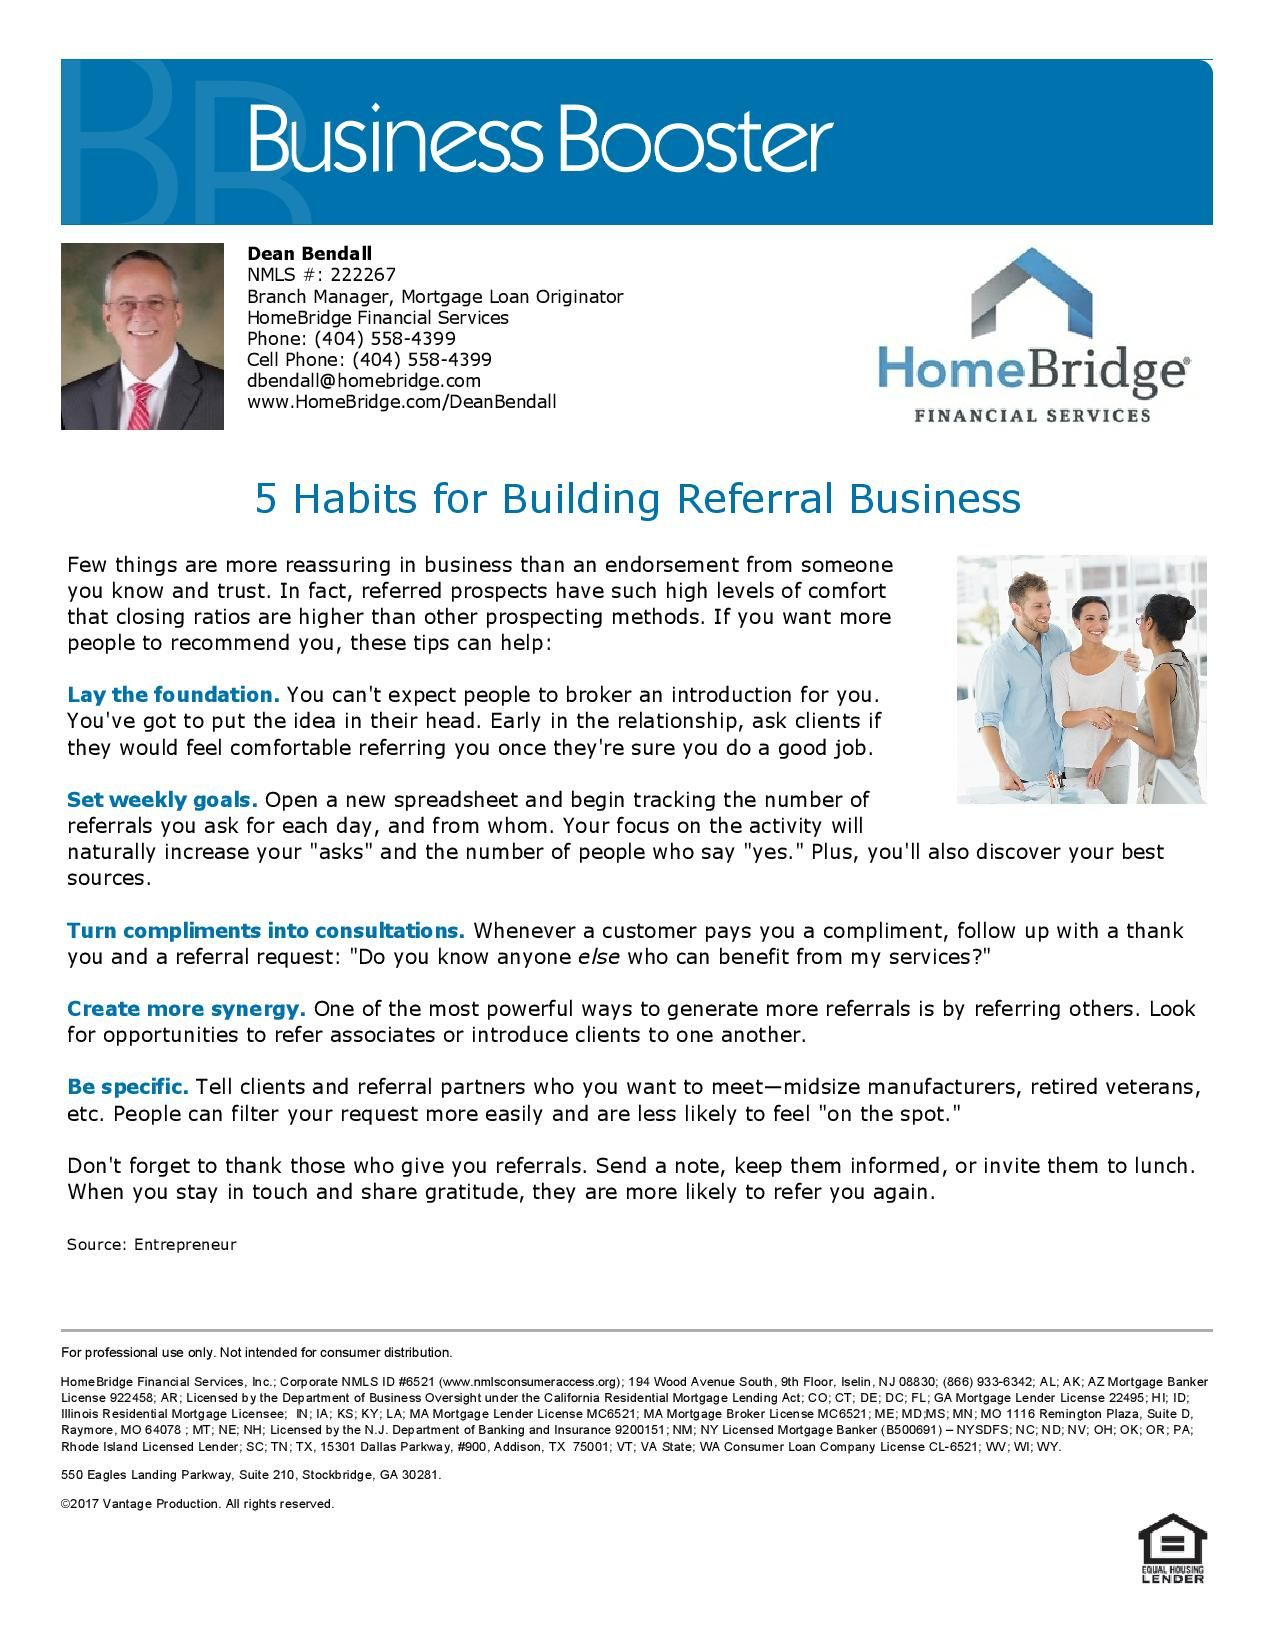 Habits For Building Referral Business Dean Bendall Mortgage